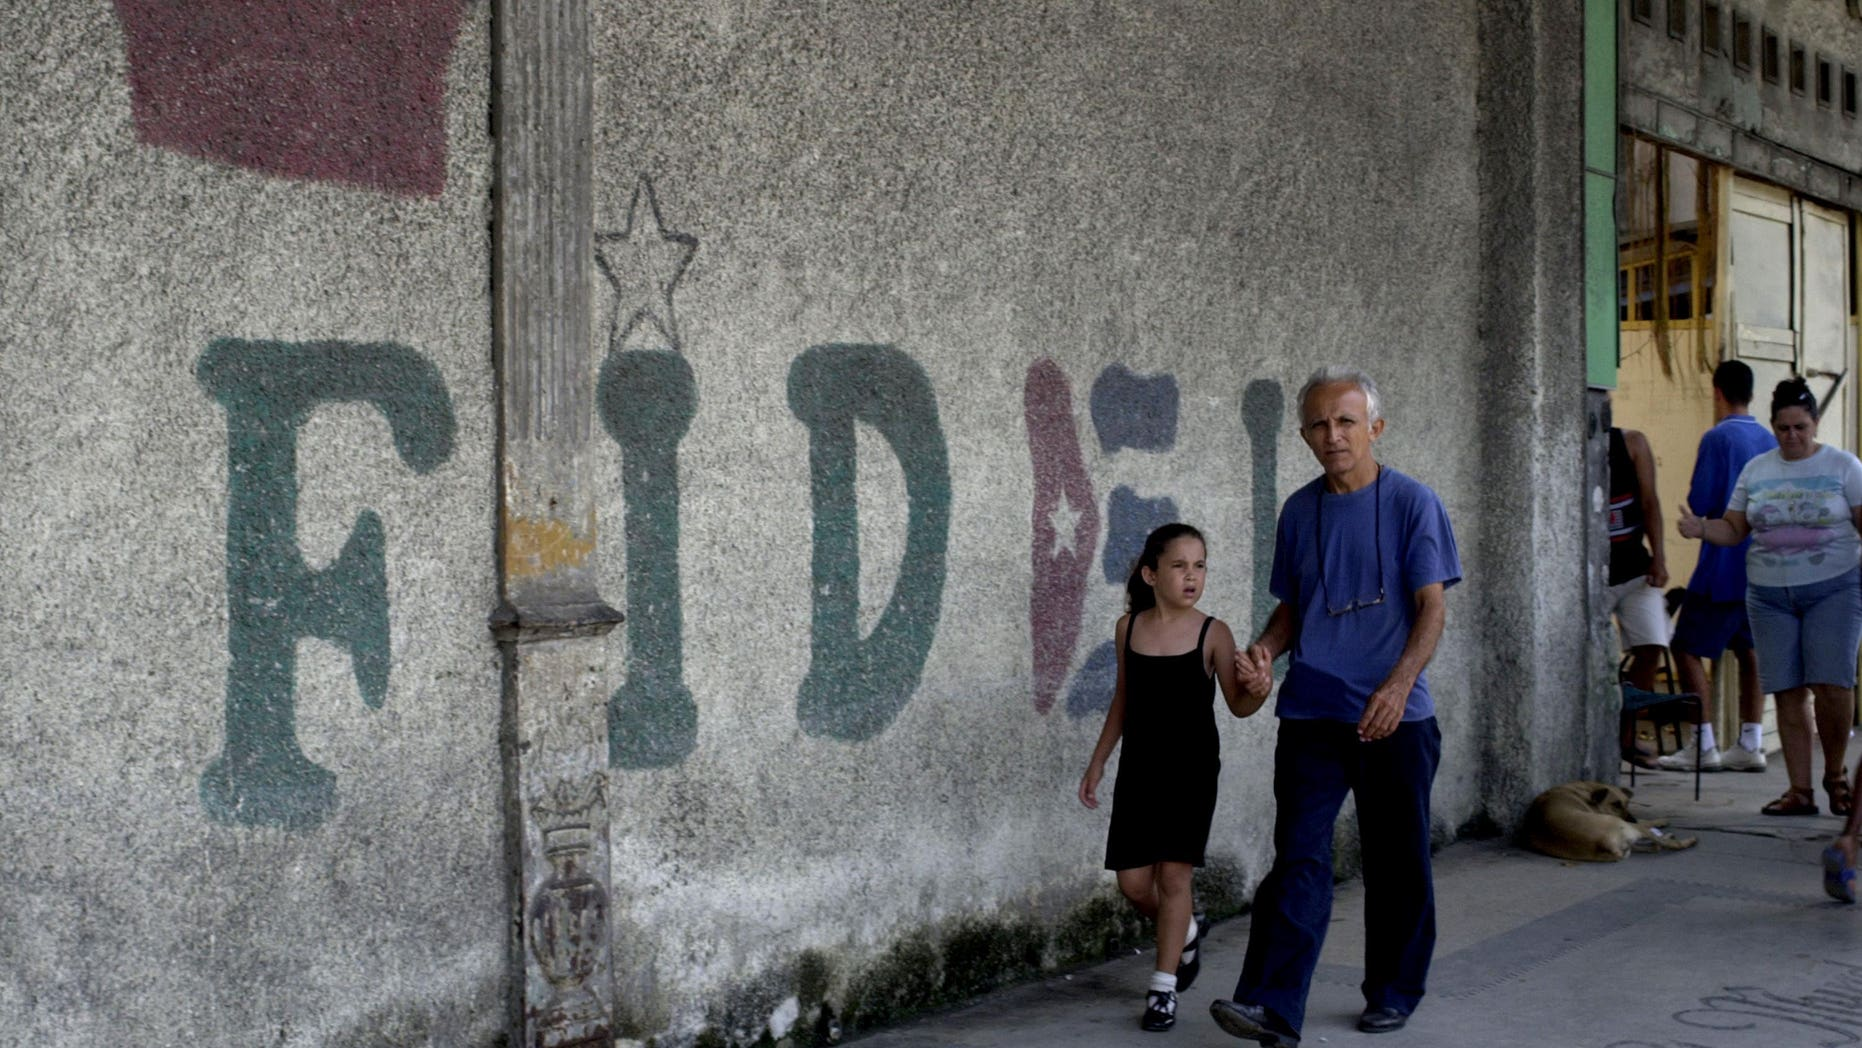 """HAVANA, CUBA - AUGUST 12:  A man walks in front of a wall that says """"Fidel"""" August 12, 2003 in Old Havana, Cuba. Cuban President Fidel Castro turns 77 August 13, 2003 and has been in power for 44 years, making him the world's longest serving head of state. (Photo by Jorge Rey/Getty Images)"""